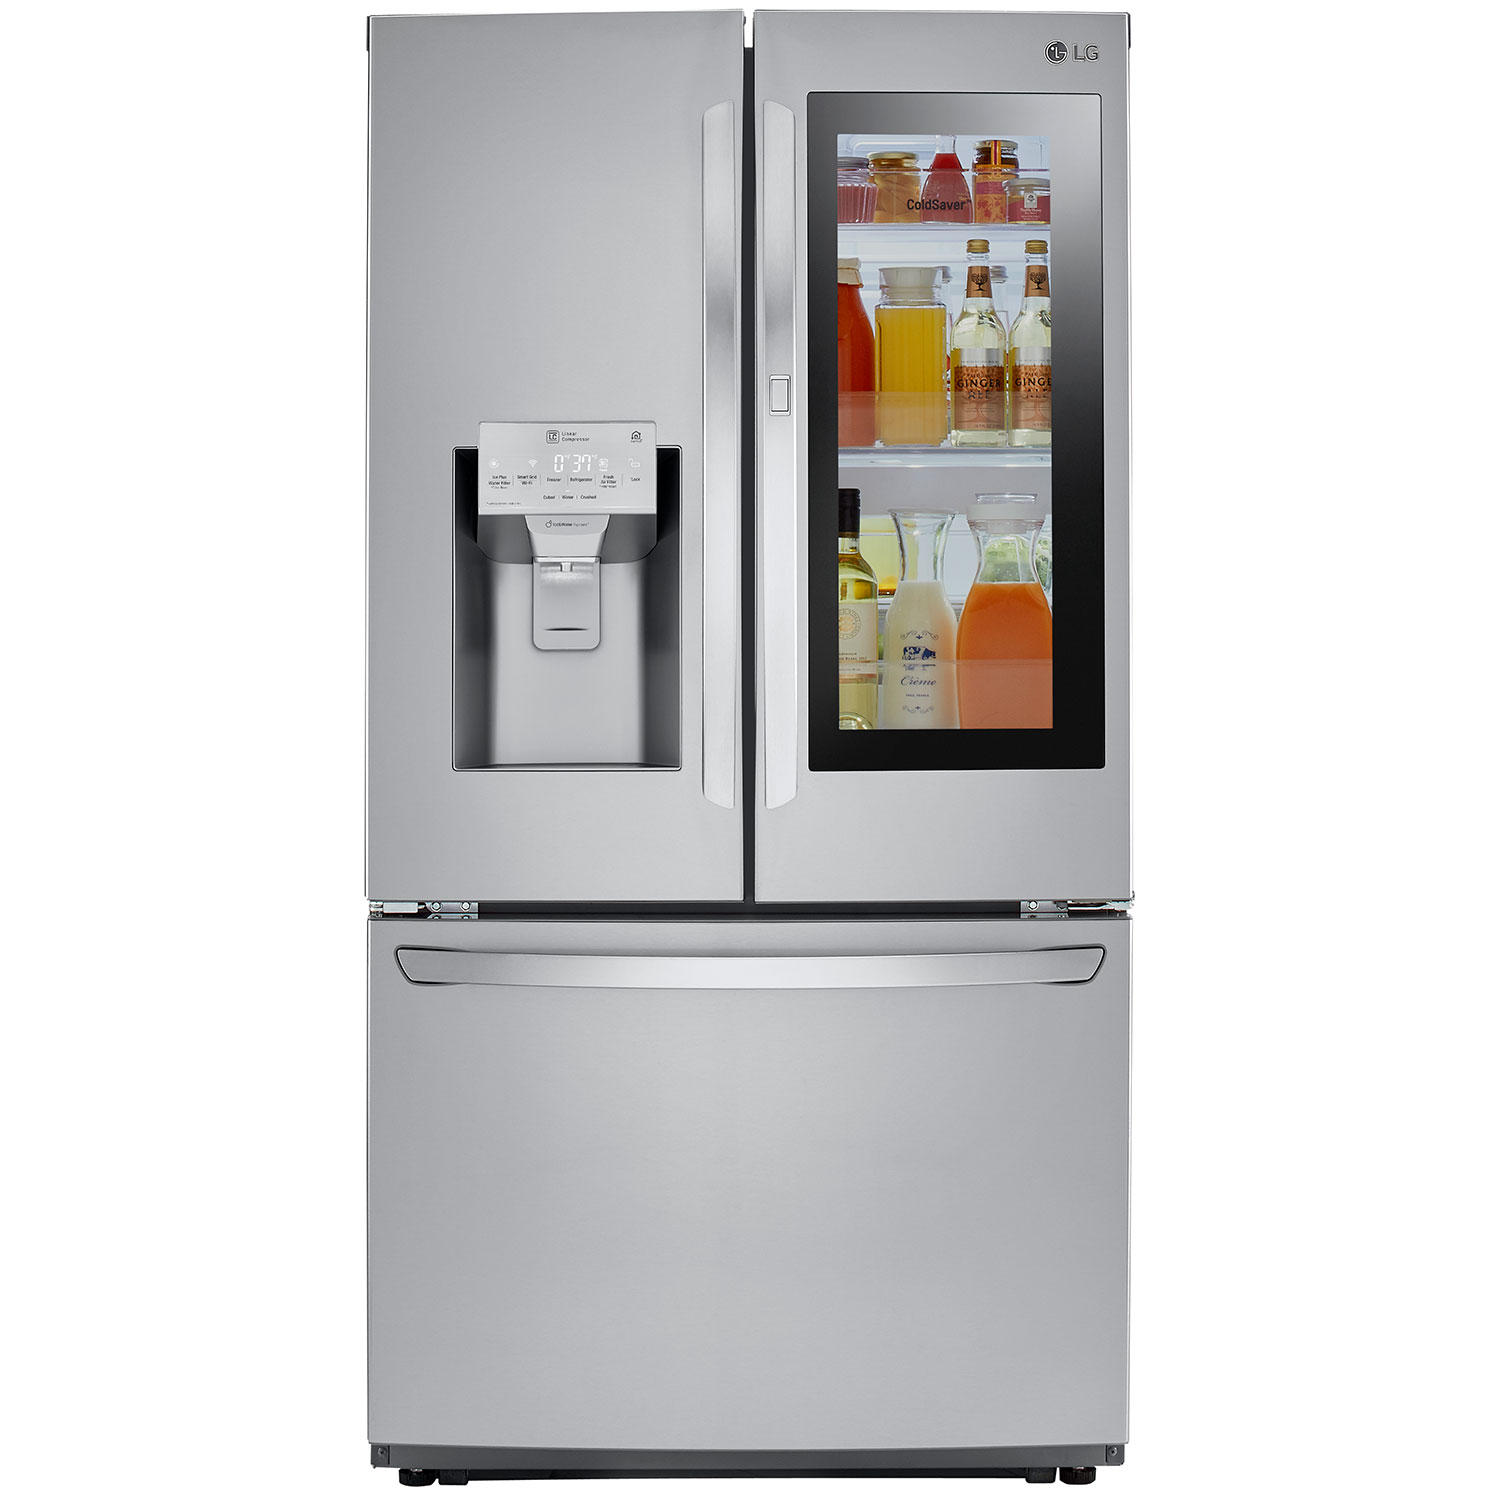 LG 26 Cu Ft French Door Refrigerator With InstaView Door-In-Door